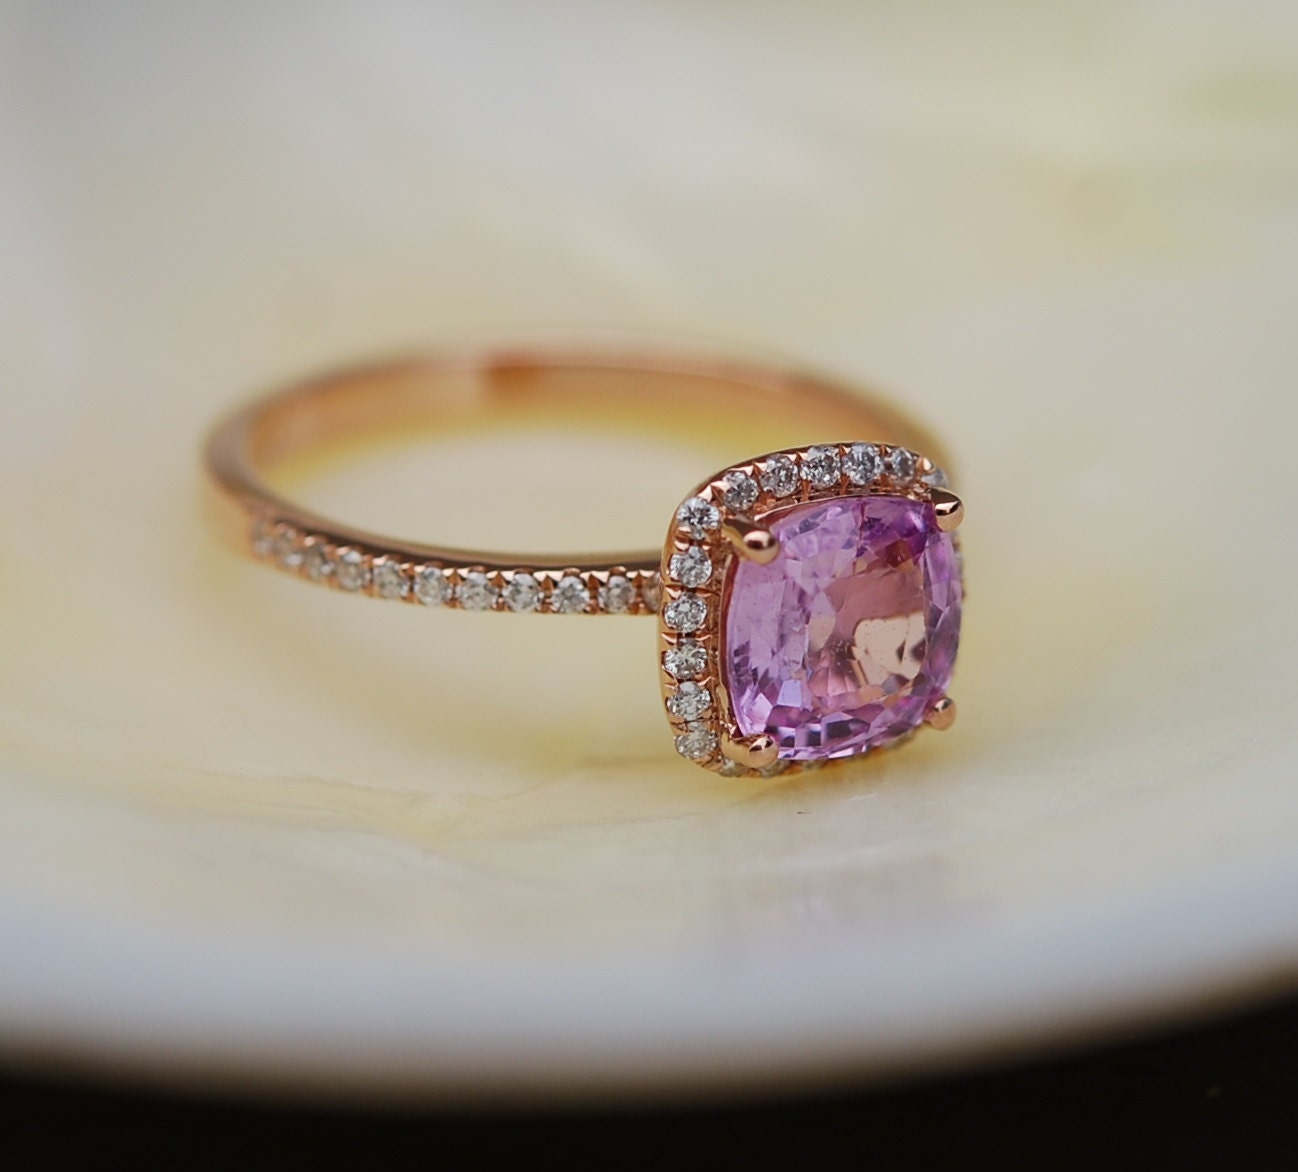 gold nature unique white natural in ring sapphire inspired pink gemstone media flower wedding rings engagement